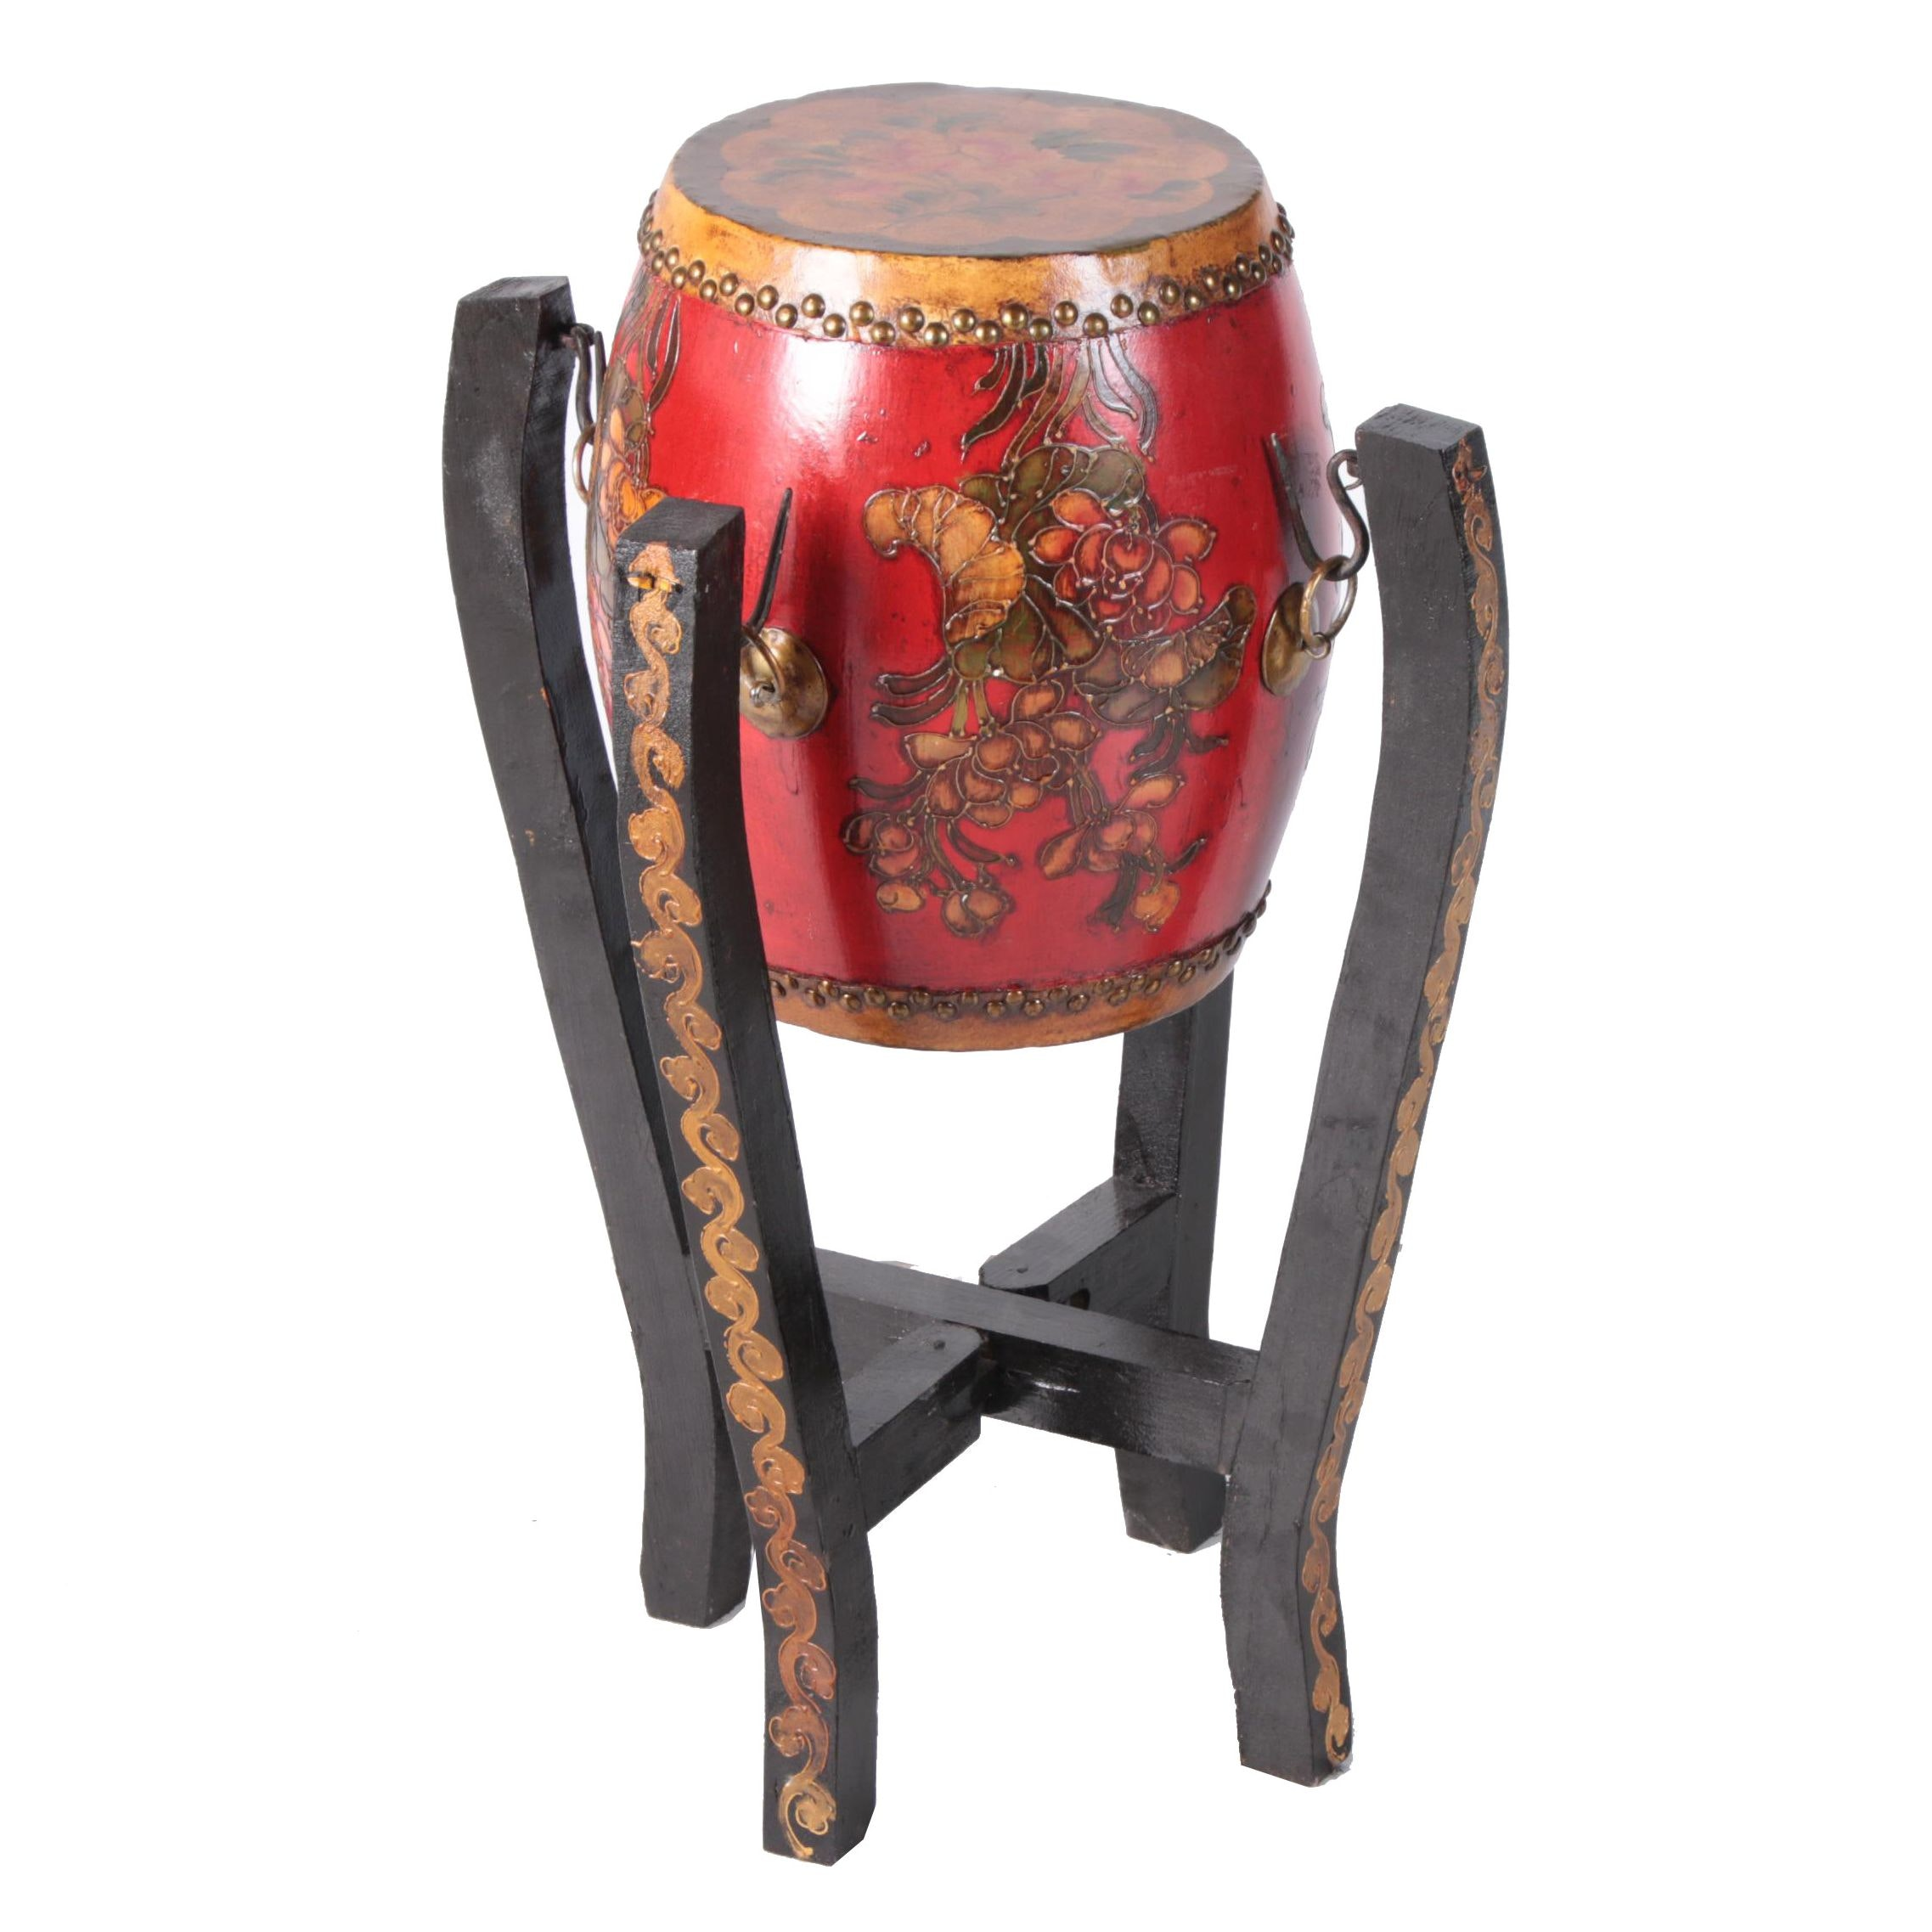 Chinese Tanggu Style Drum with Wooden Stand